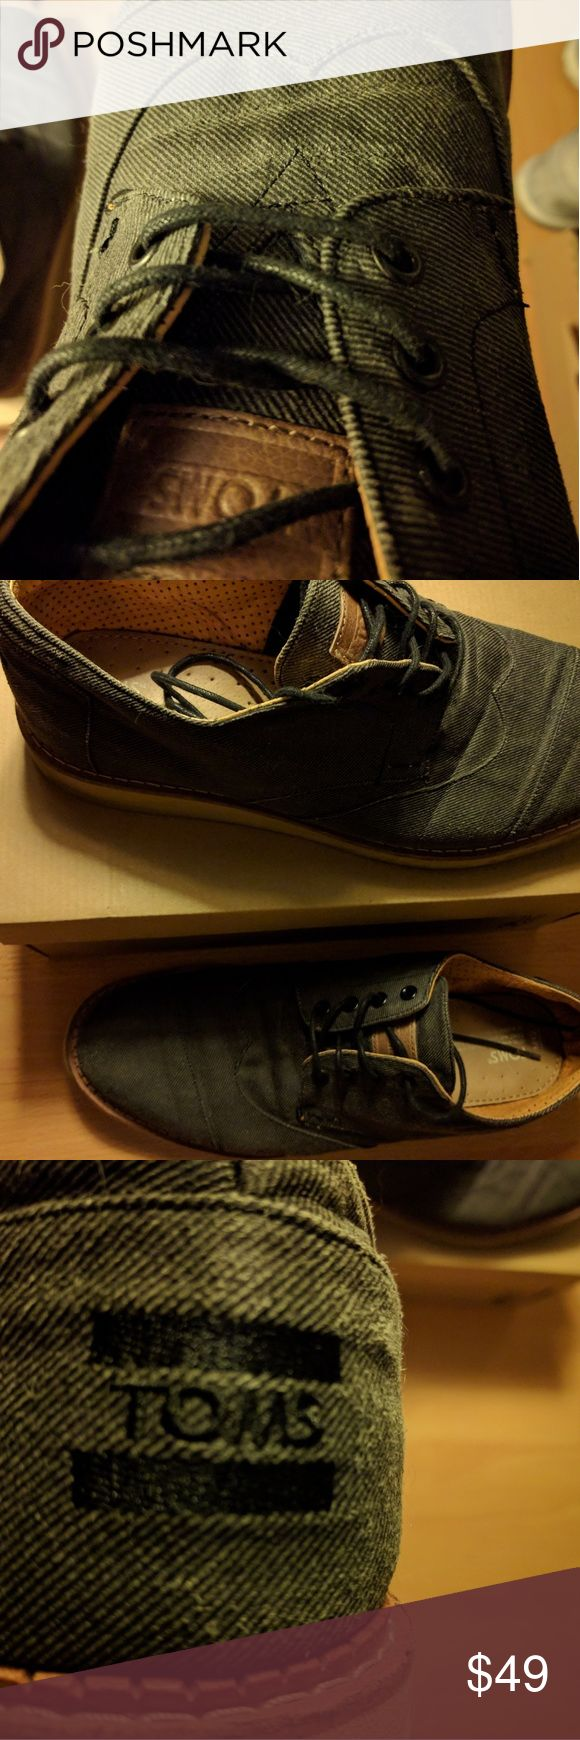 Genuine Tom's Shoes Oxford Lace Ups Gray Size 12 Extremely comfortable Dress/ Casual Shoes in the English Oxford Motif, insuring comfort at any formal event. Size is 12/ Color is Dark Gray/ Wet Asphalt. Please see my other listings, We also carry same shoe in Creme Color. Shoes are Genuine & unworn in New condition, with generic box. Toms Shoes Oxfords & Derbys